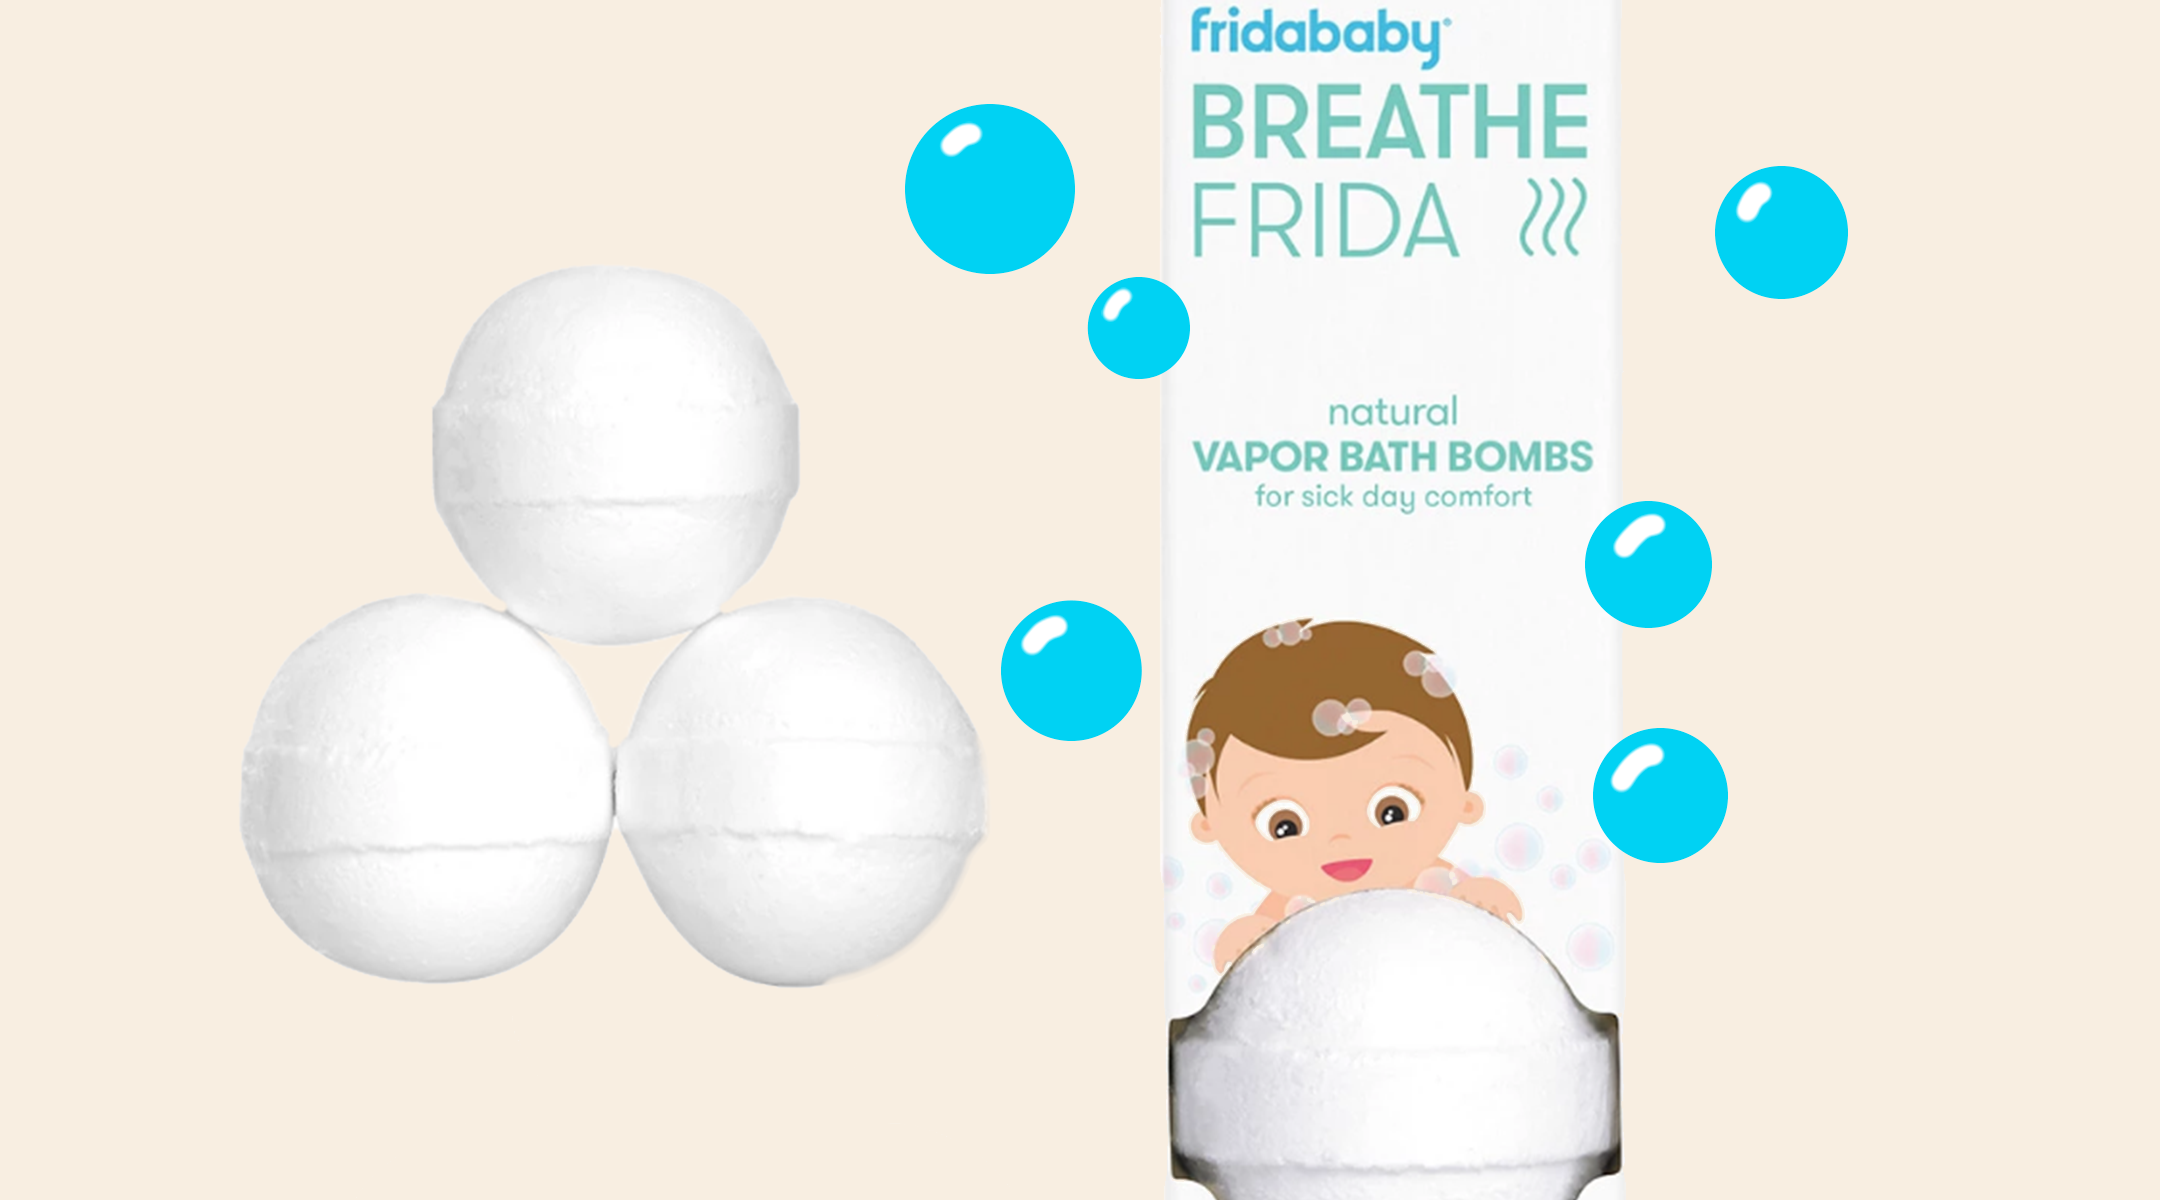 friday baby bath bombs for colds